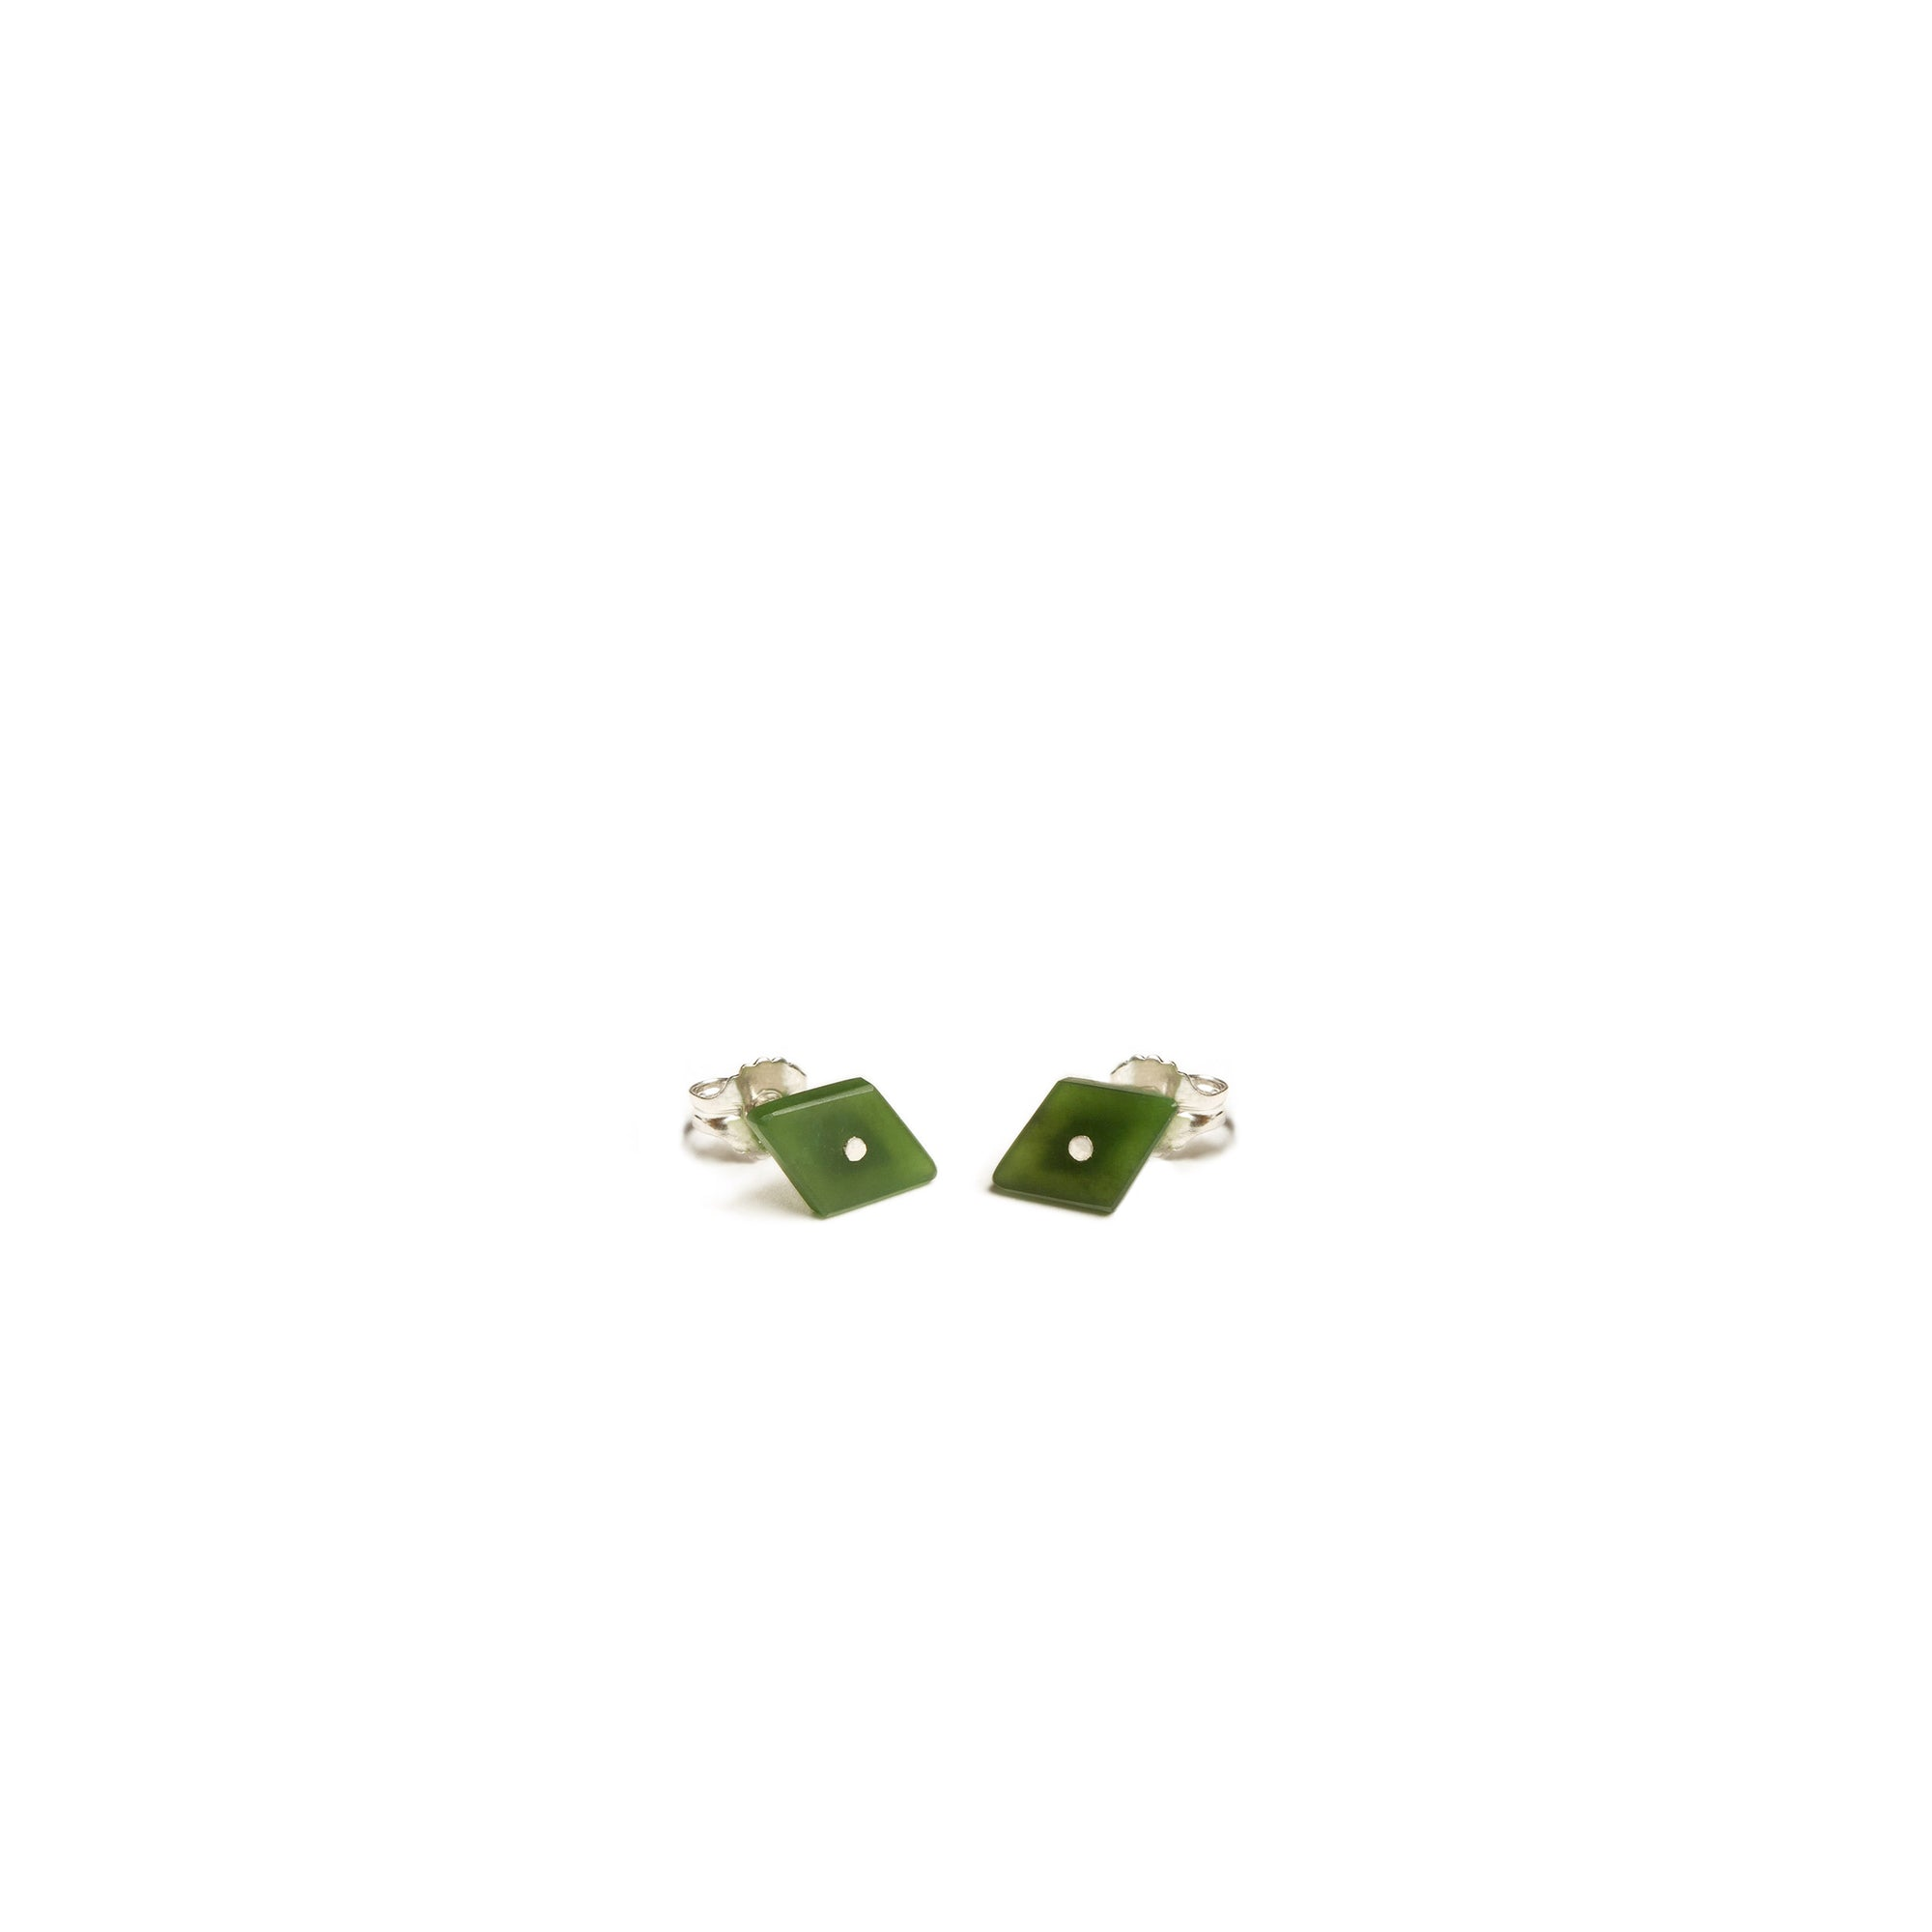 New Zealand Pounamu Diamond Shaped Stud Earrings